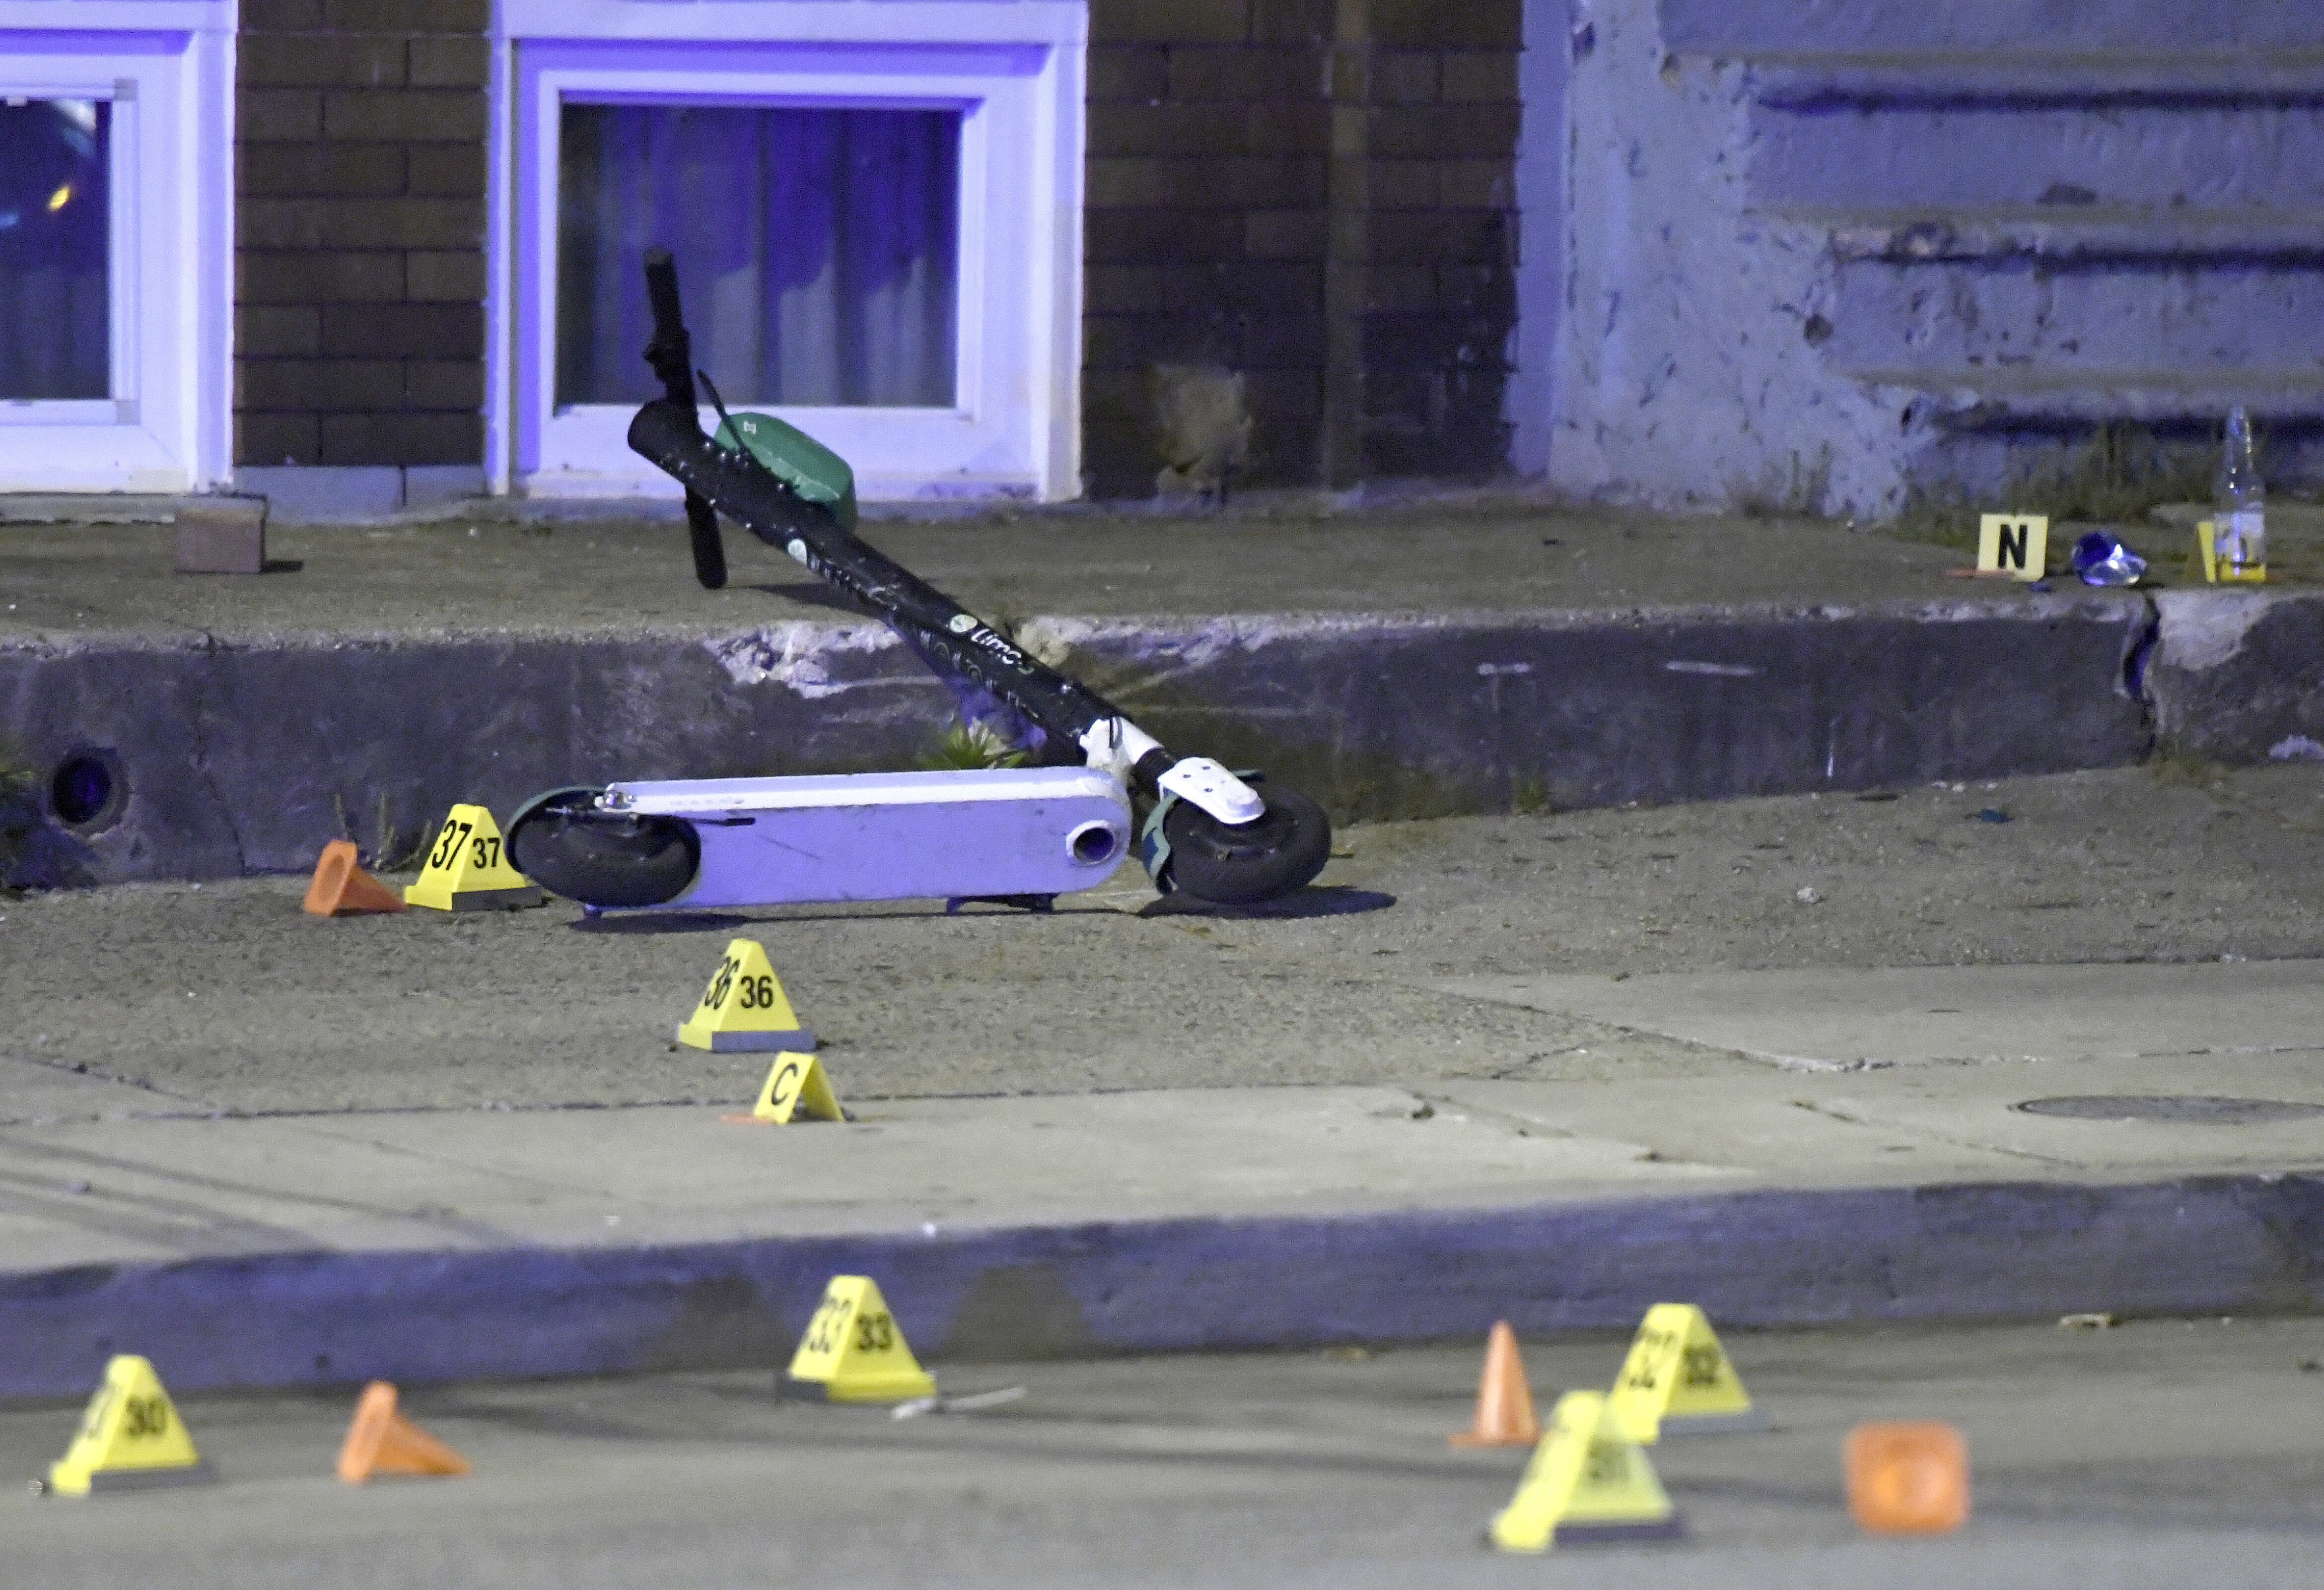 A scooter lies among evidence markers near the scene where authorities say eight people were shot, at least one fatally